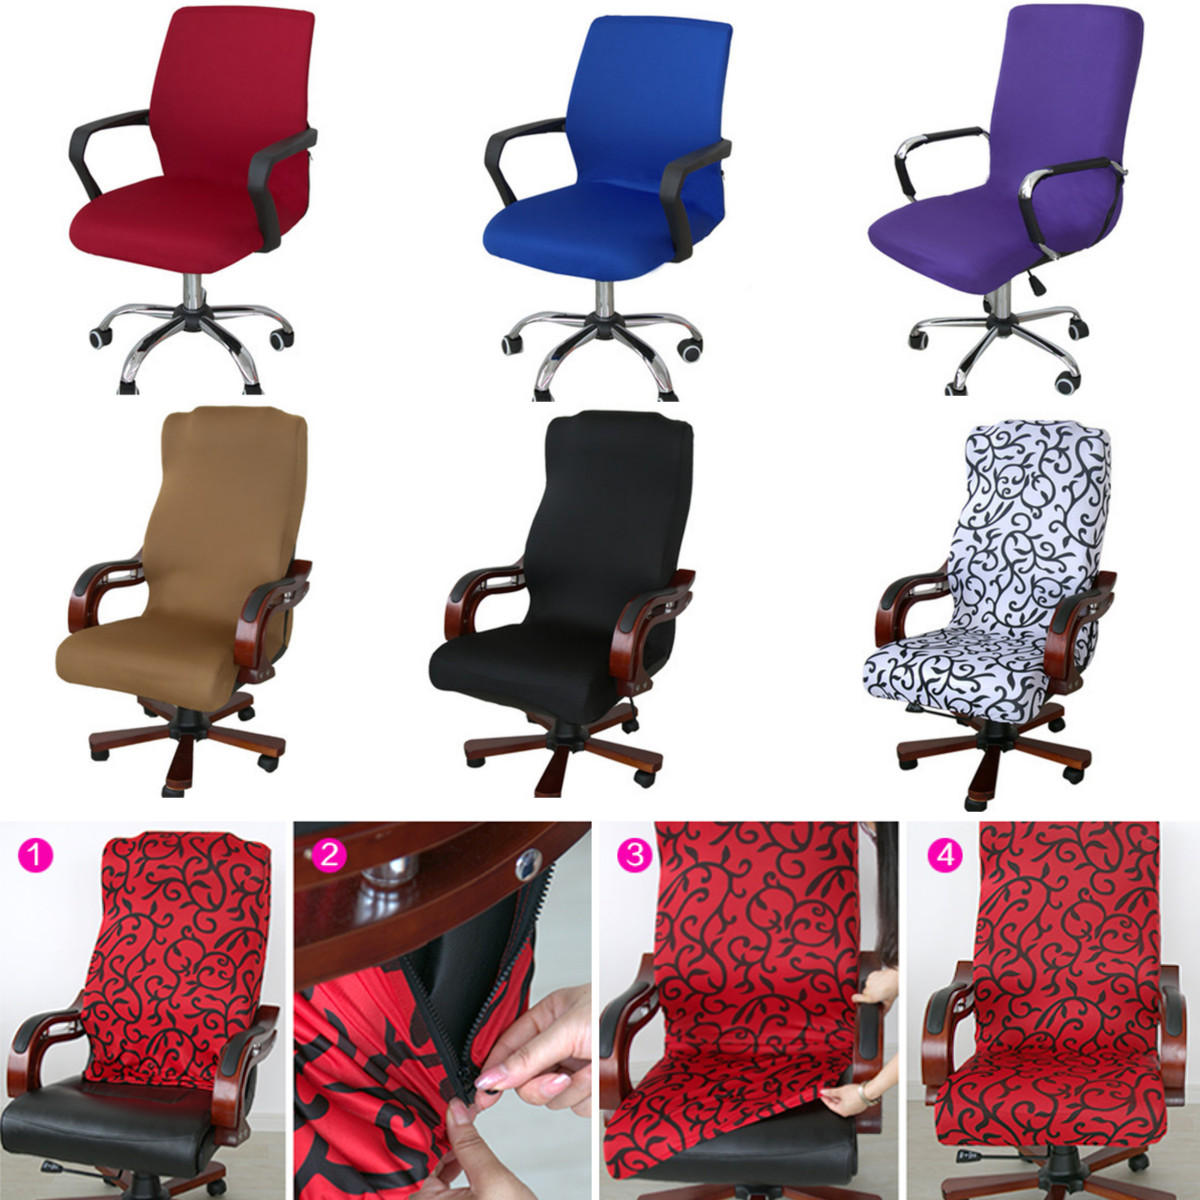 S/M/L Office Computer Chair Cover Side Zipper Design Arm Chair Cover Recouvre Chaise Stretch Rotating Lift Chair Cover